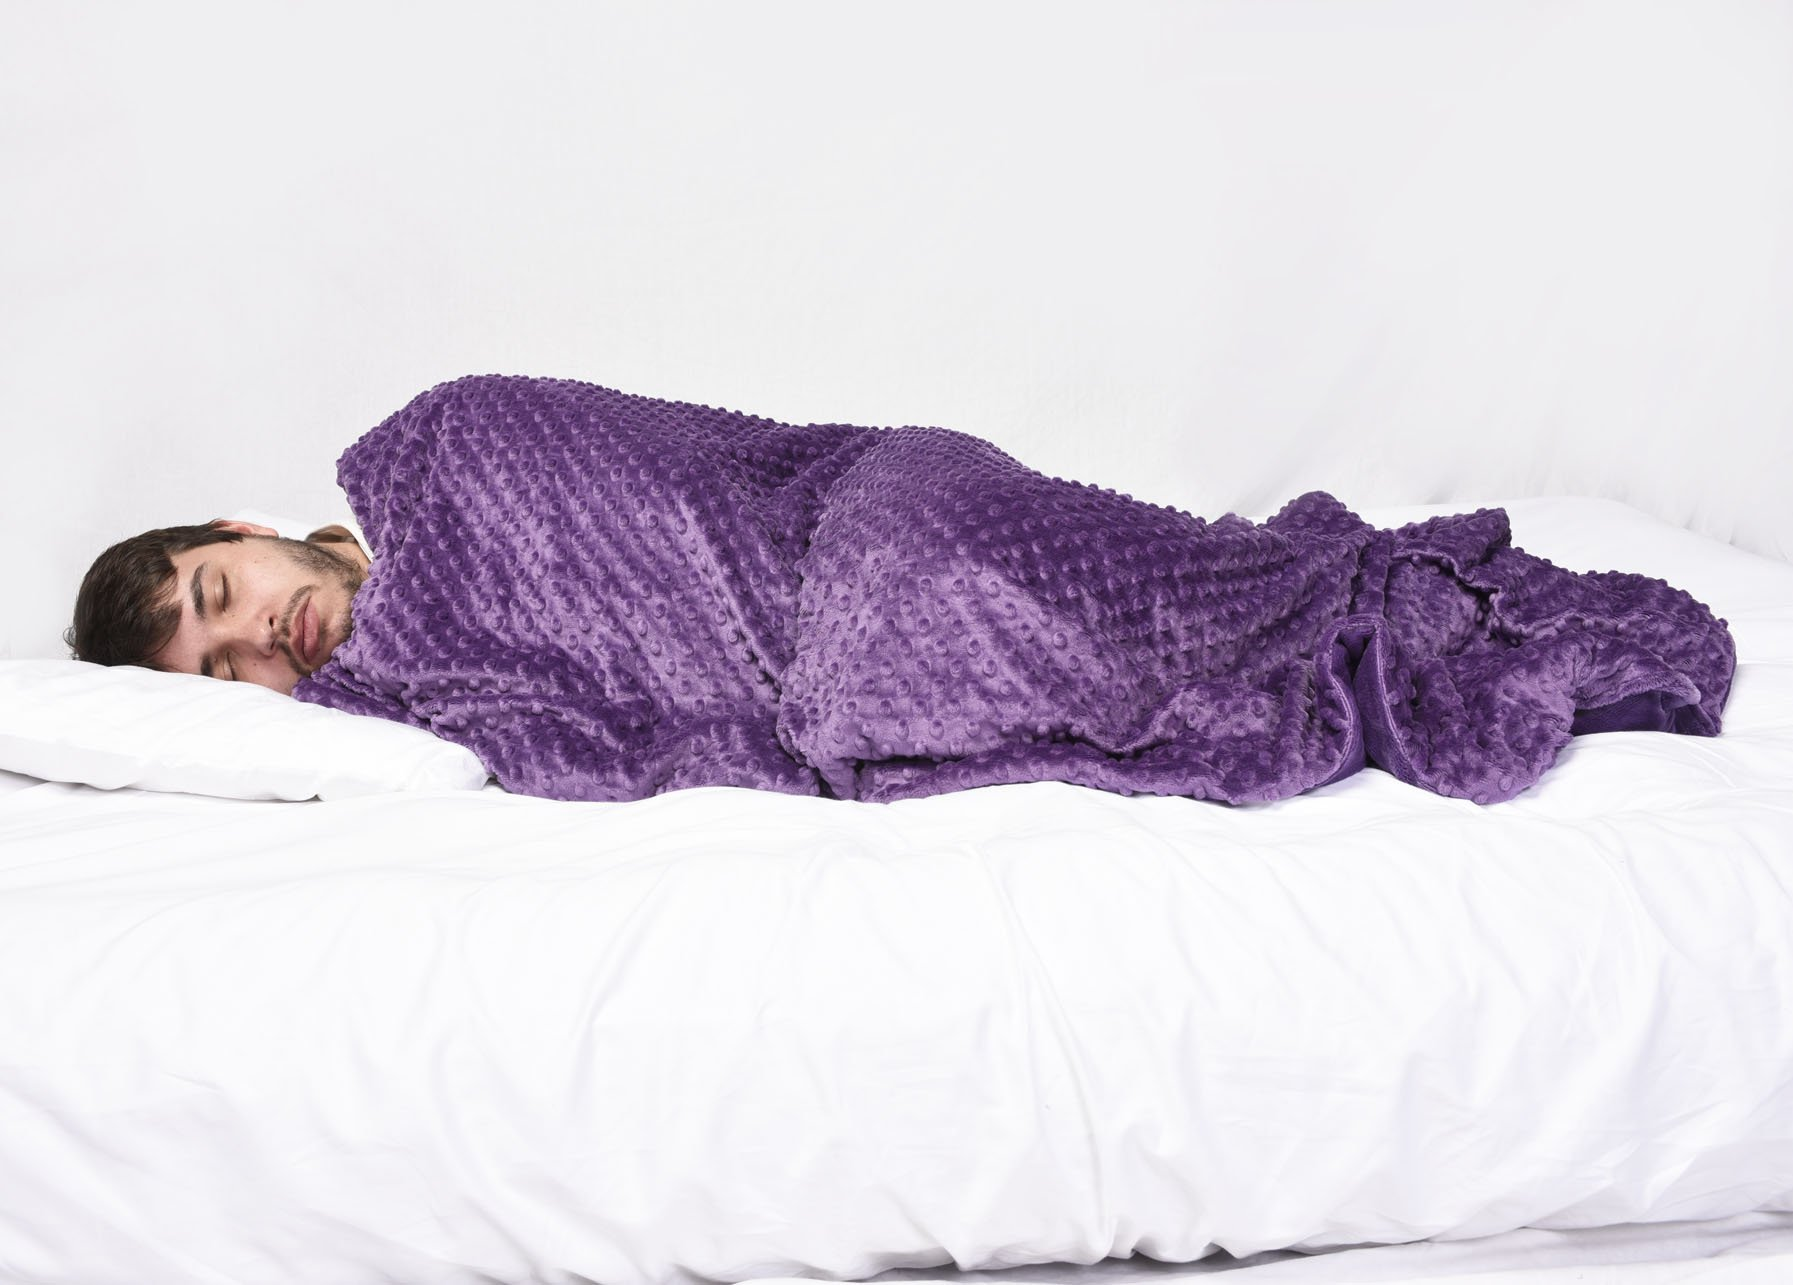 Creature Commforts Weighted 15lb Security Blanket for Adults and Teens - Great for Stress, Anxiety, ADHD, Autism, PTSD, Insomnia Relief, Removeable Comforter Cover, Extra Large, 40 x 60 (Purple) by Creature Commforts